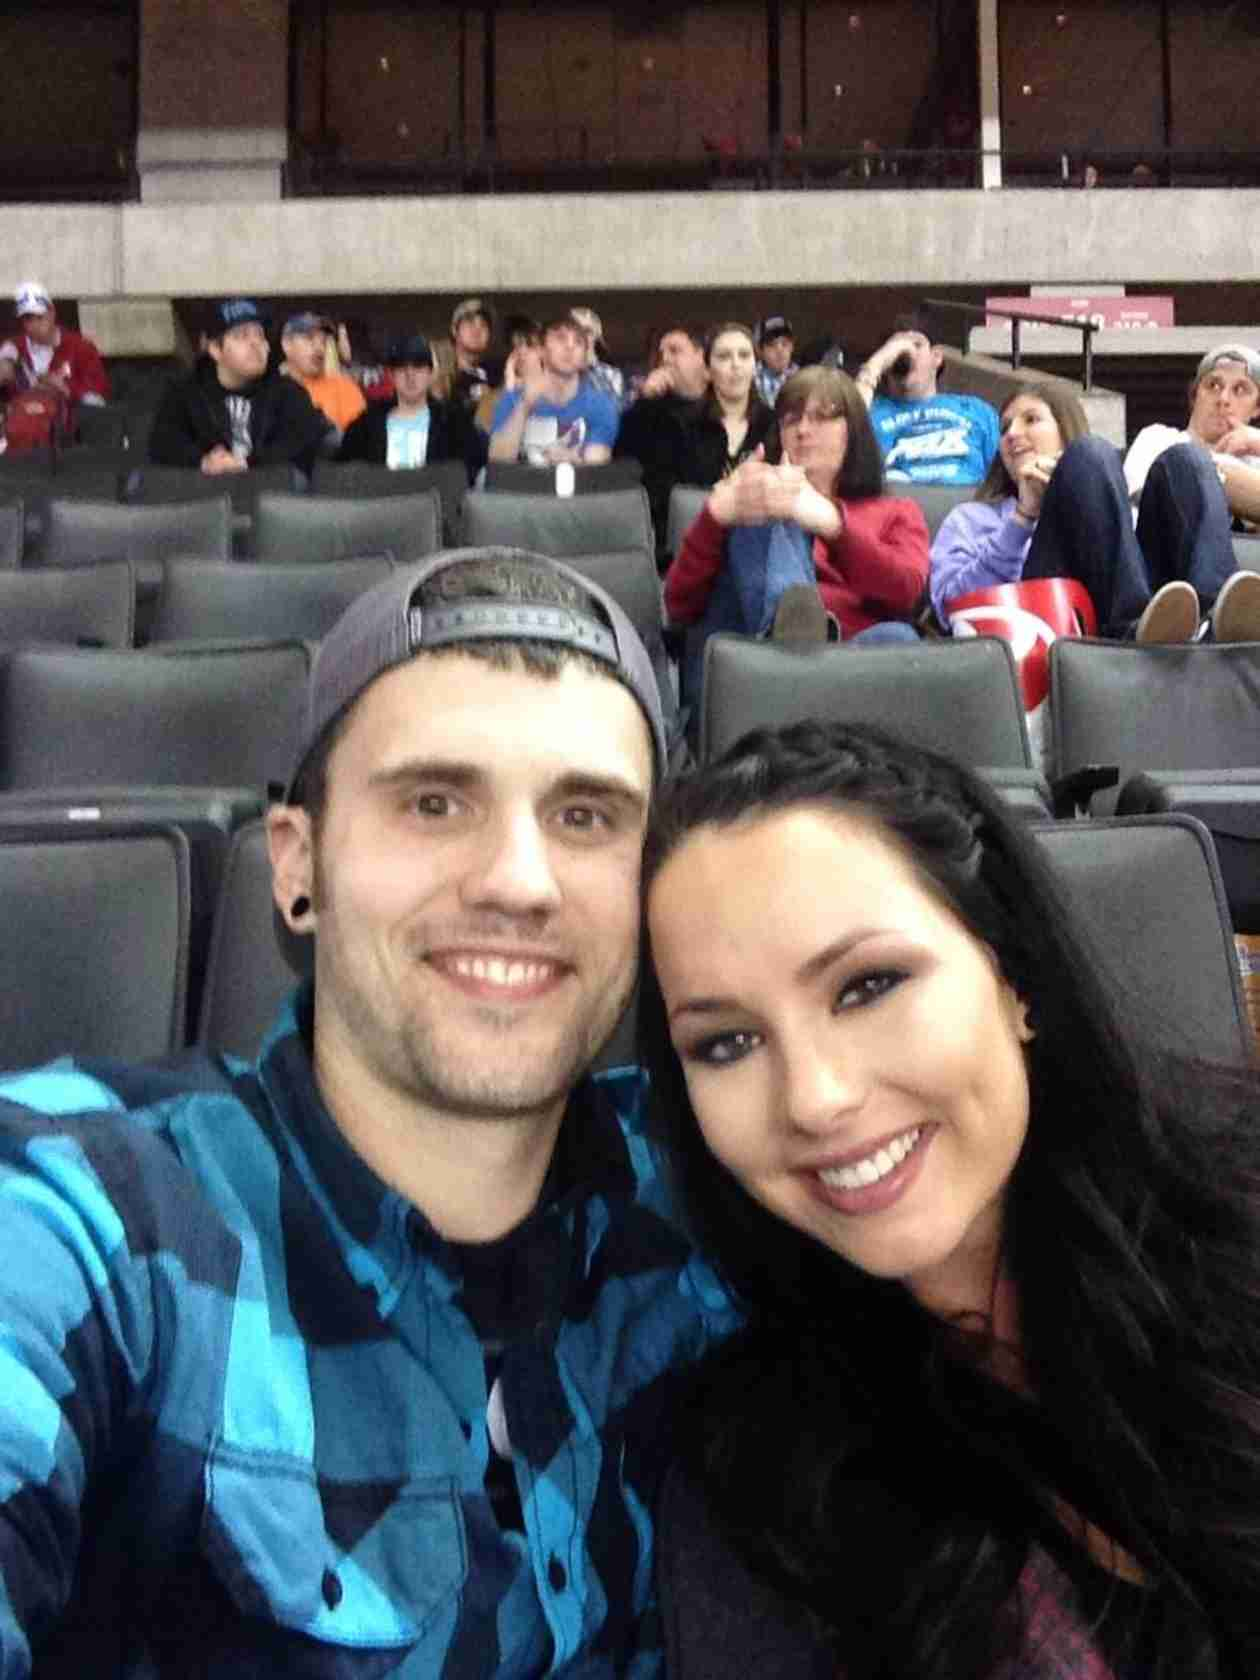 Ryan Edwards's Girlfriend Takes Him Back After He Admitted to Cheating!